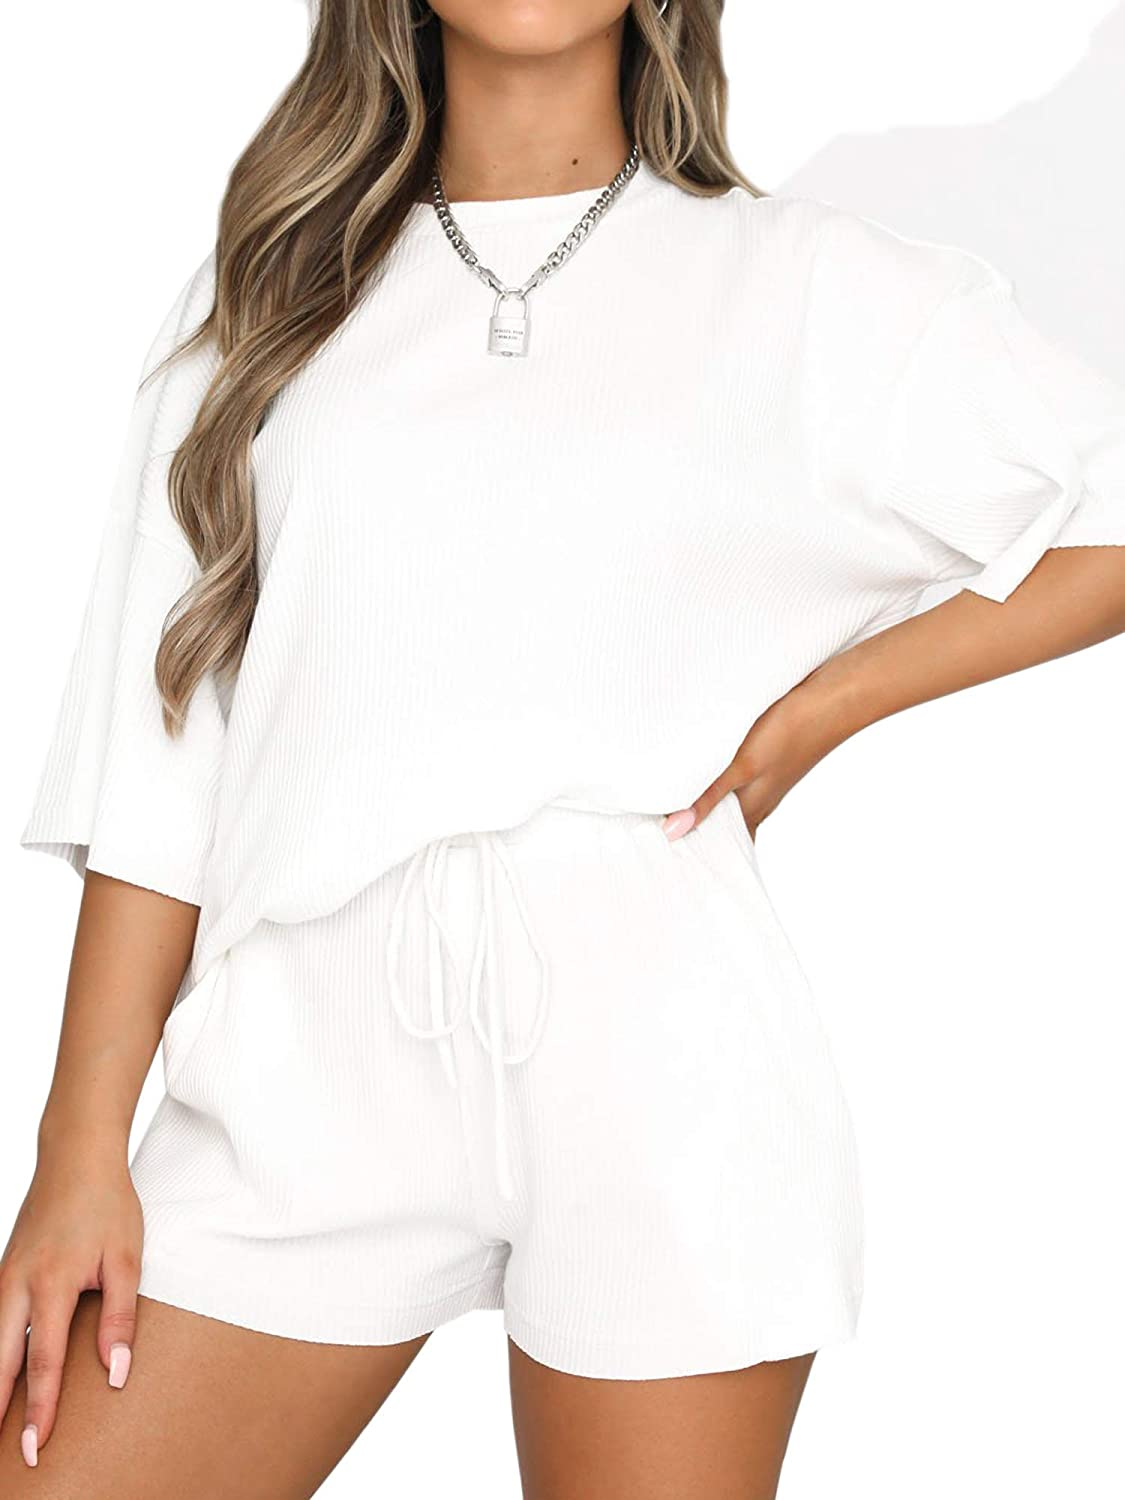 Women's 2 Piece Knit Outfits Oversized Short Sleeve T-Shirts Shorts Set Sportswear with 2 Pockets